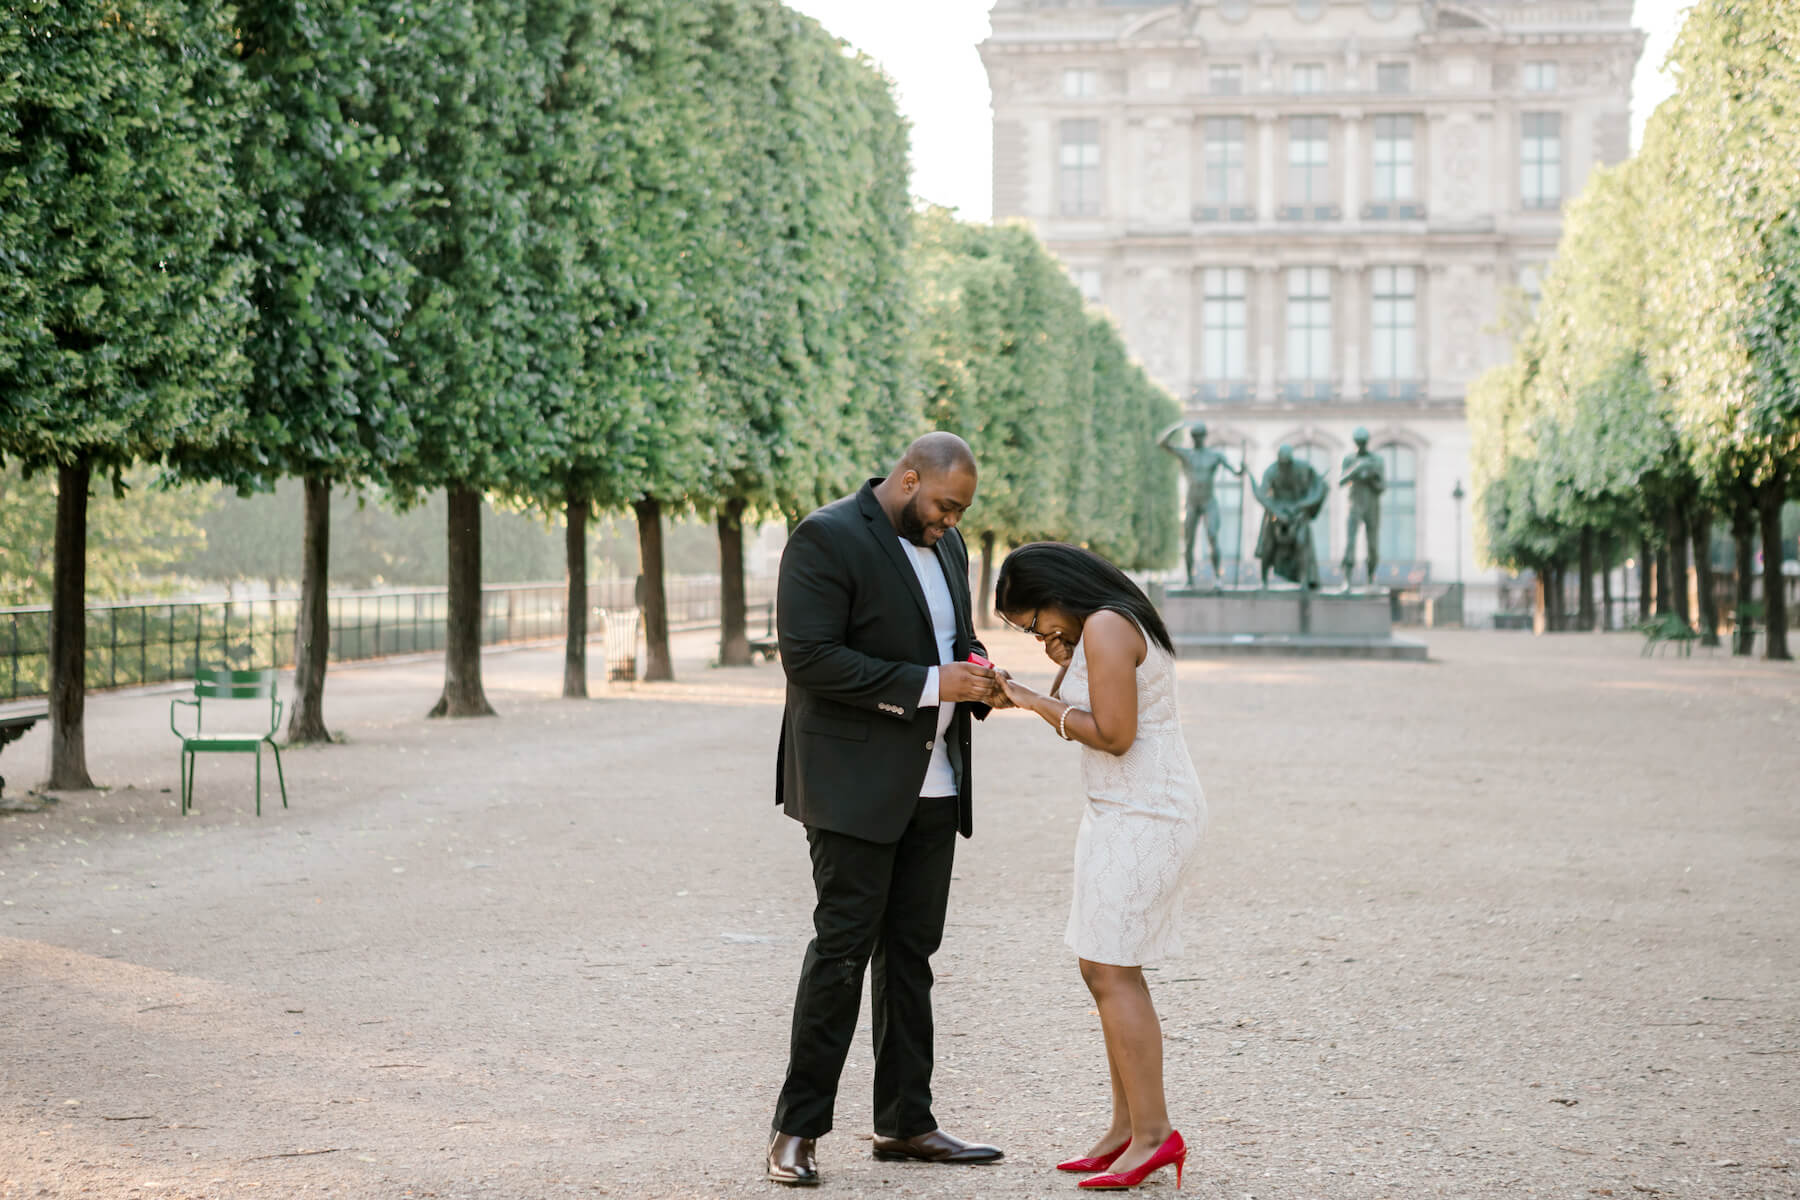 the man is proposing to the woman in Paris, both are wearing formal attire.